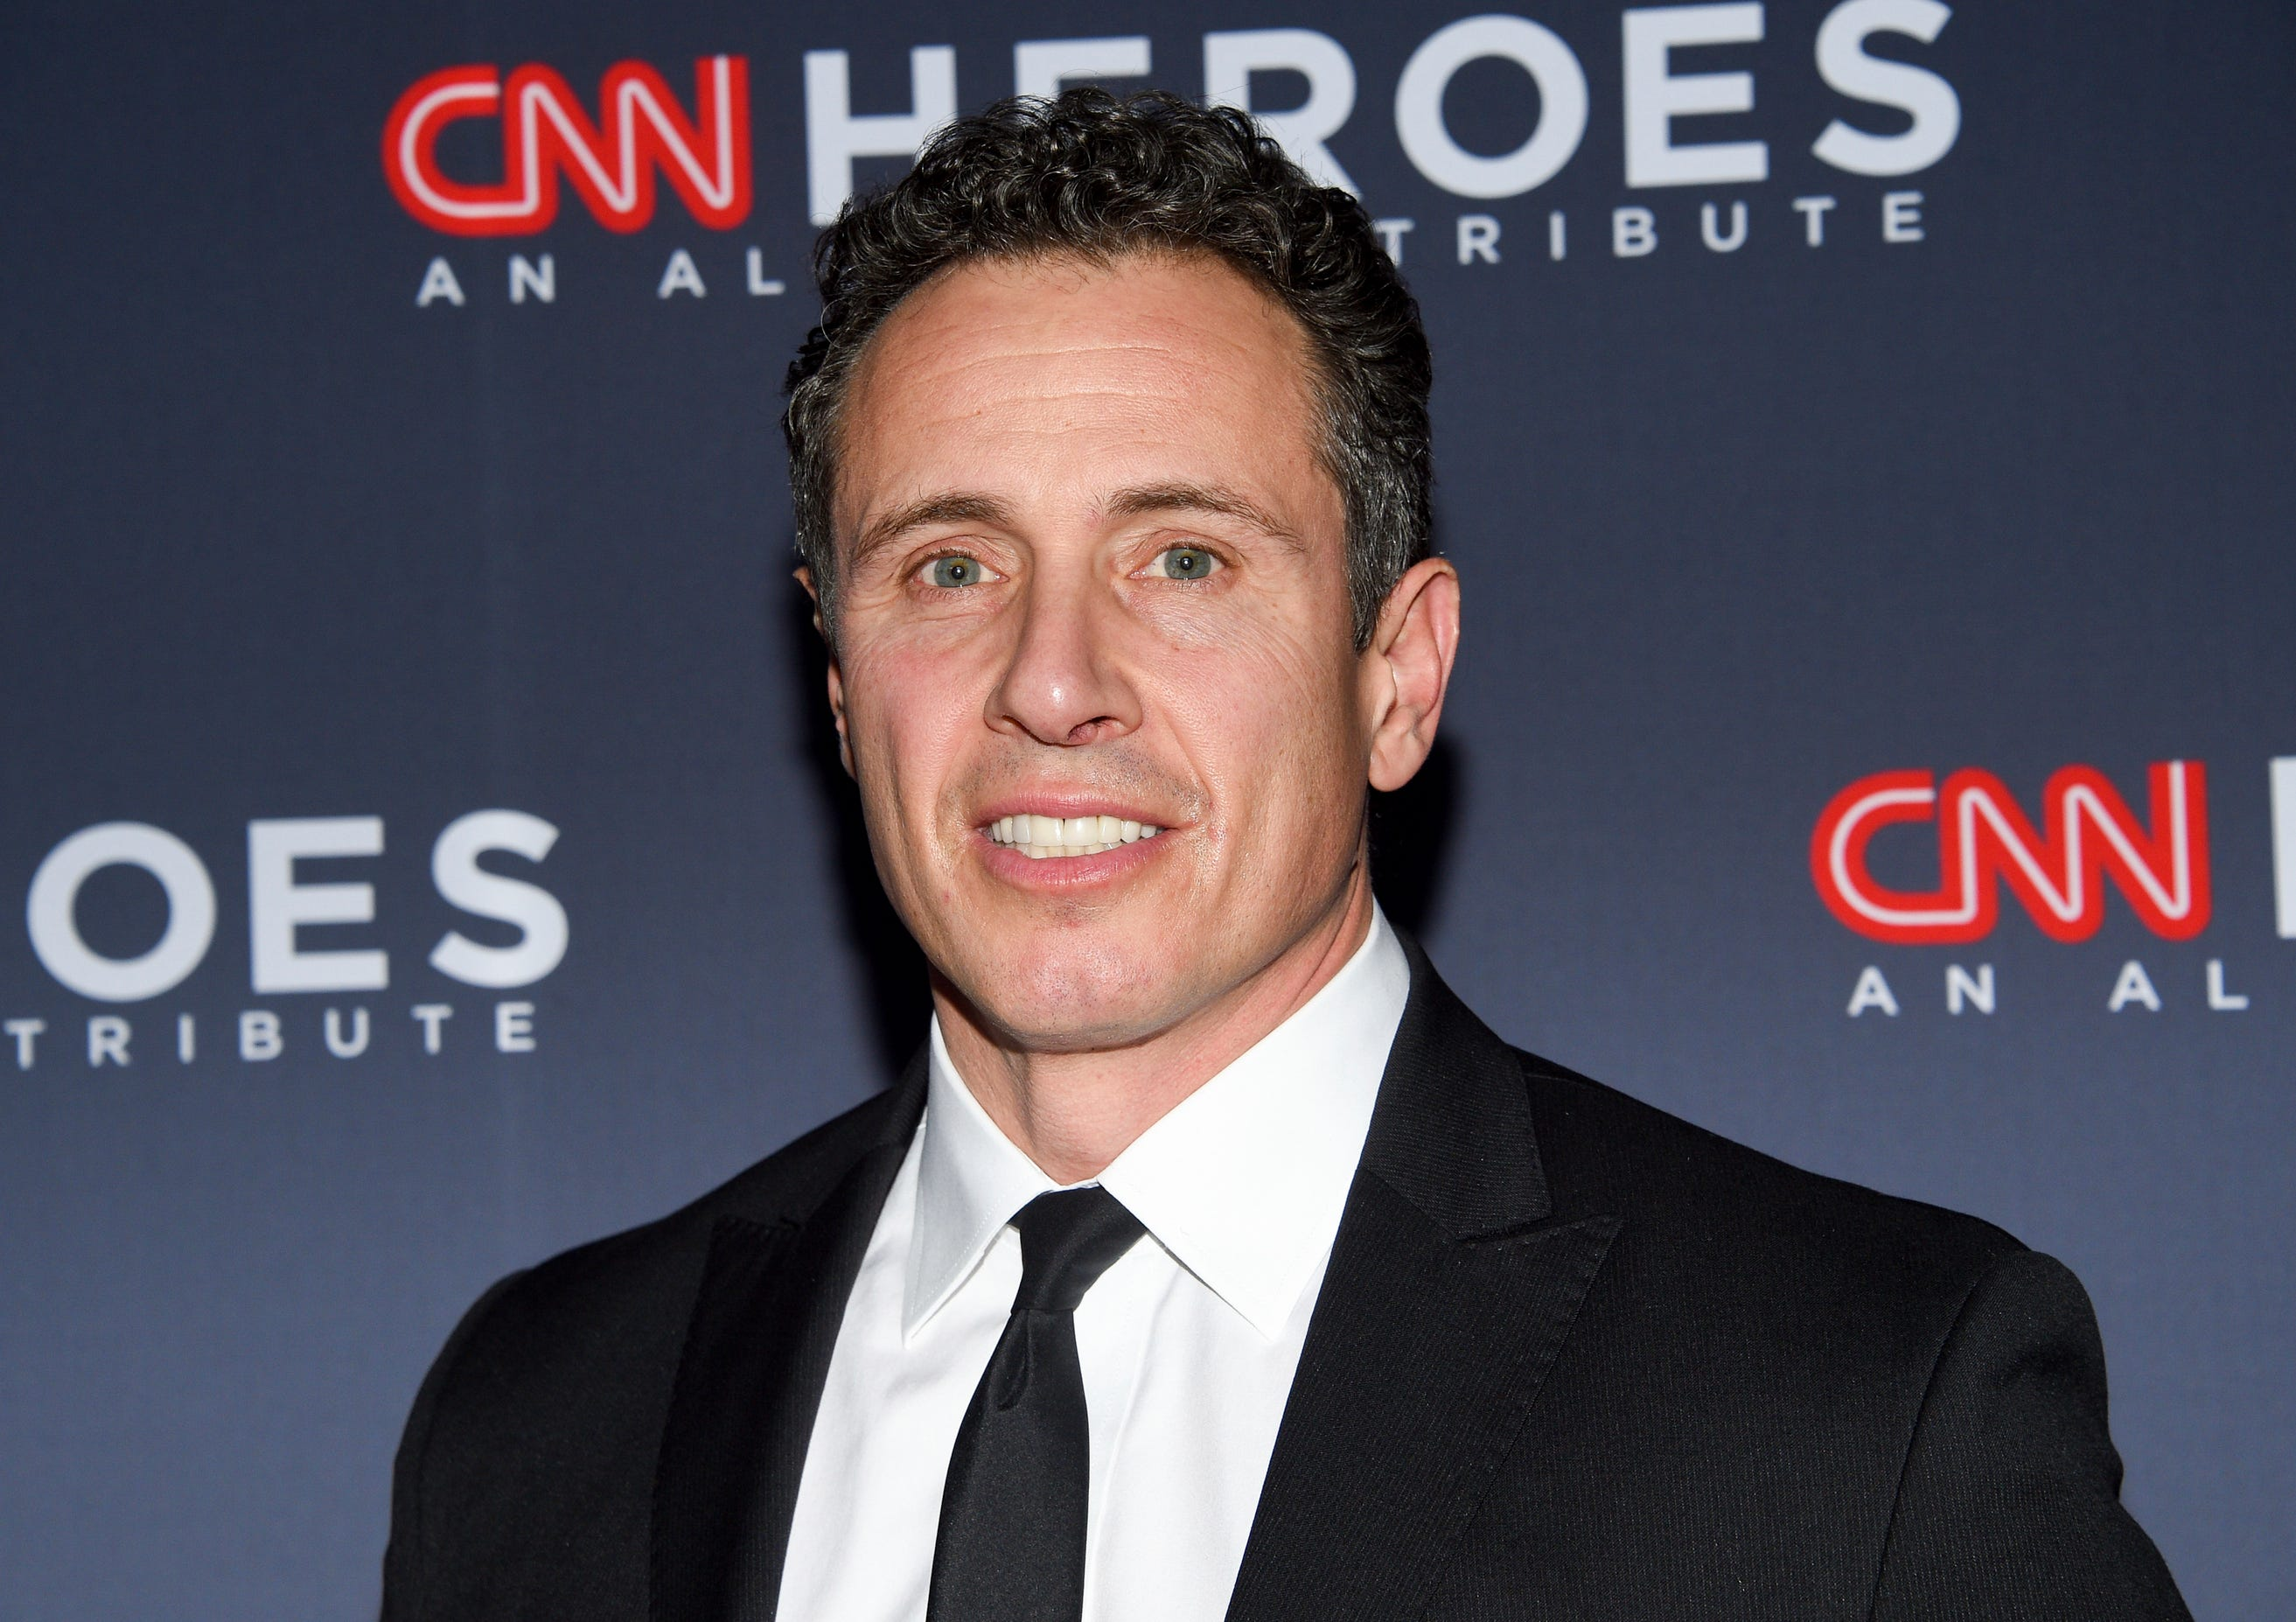 CNN anchor Chris Cuomo accused of sexual harassment by former female ABC News boss